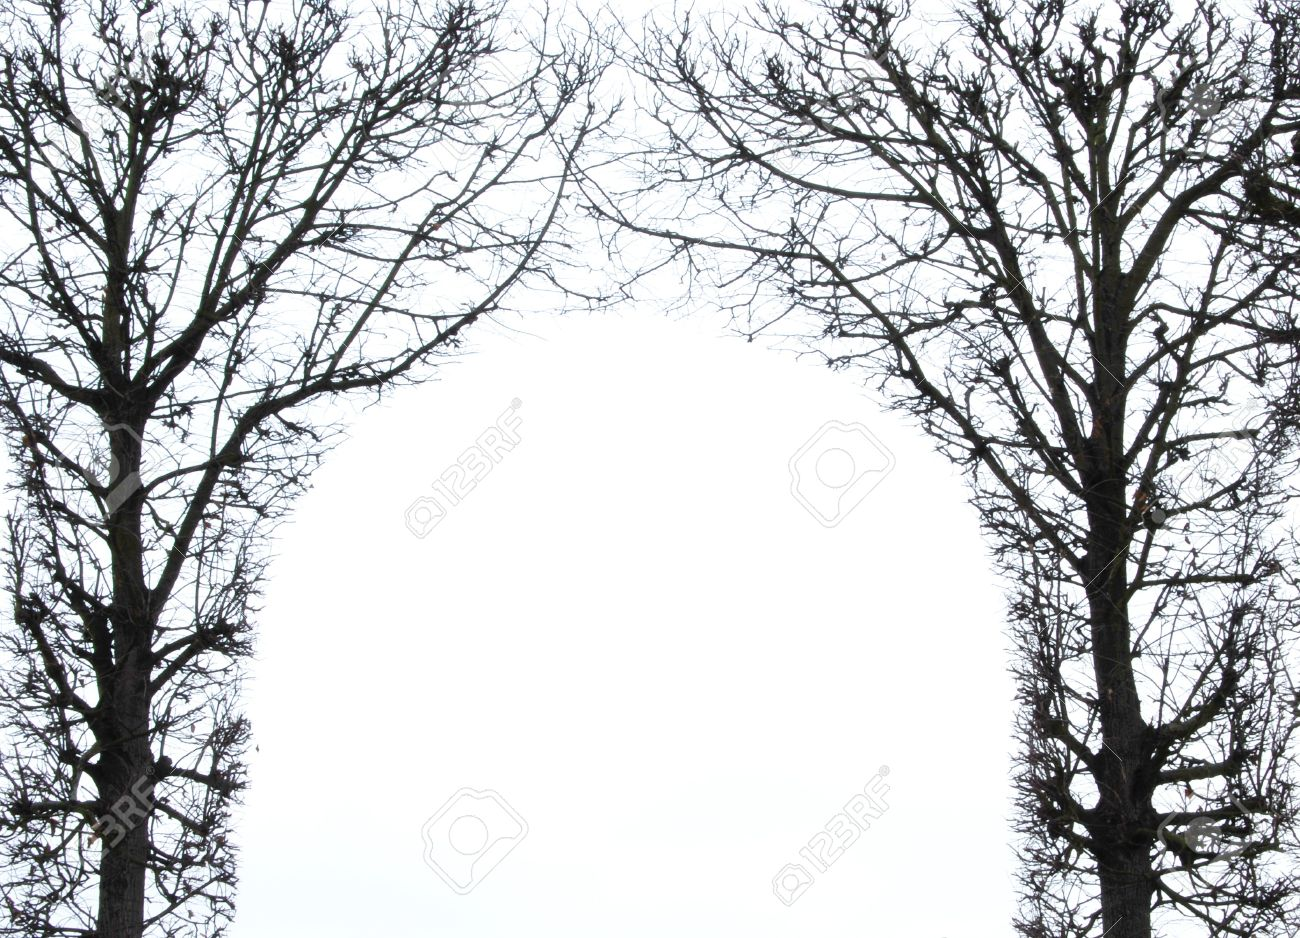 Natural Frame Of Two Trees Stock Photo, Picture And Royalty Free ...